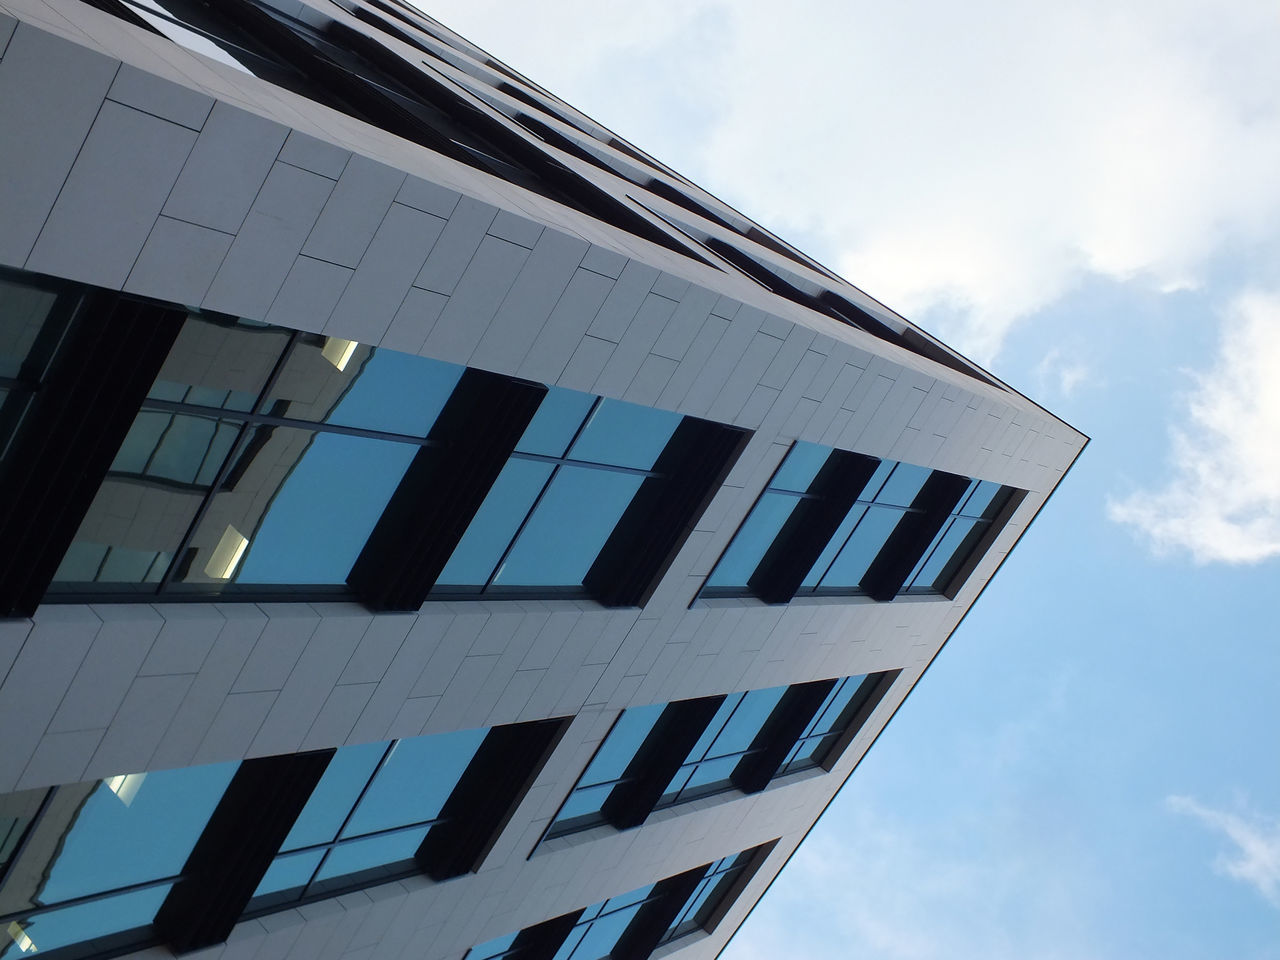 architecture, built structure, building exterior, low angle view, modern, window, sky, cloud - sky, day, no people, outdoors, skyscraper, city